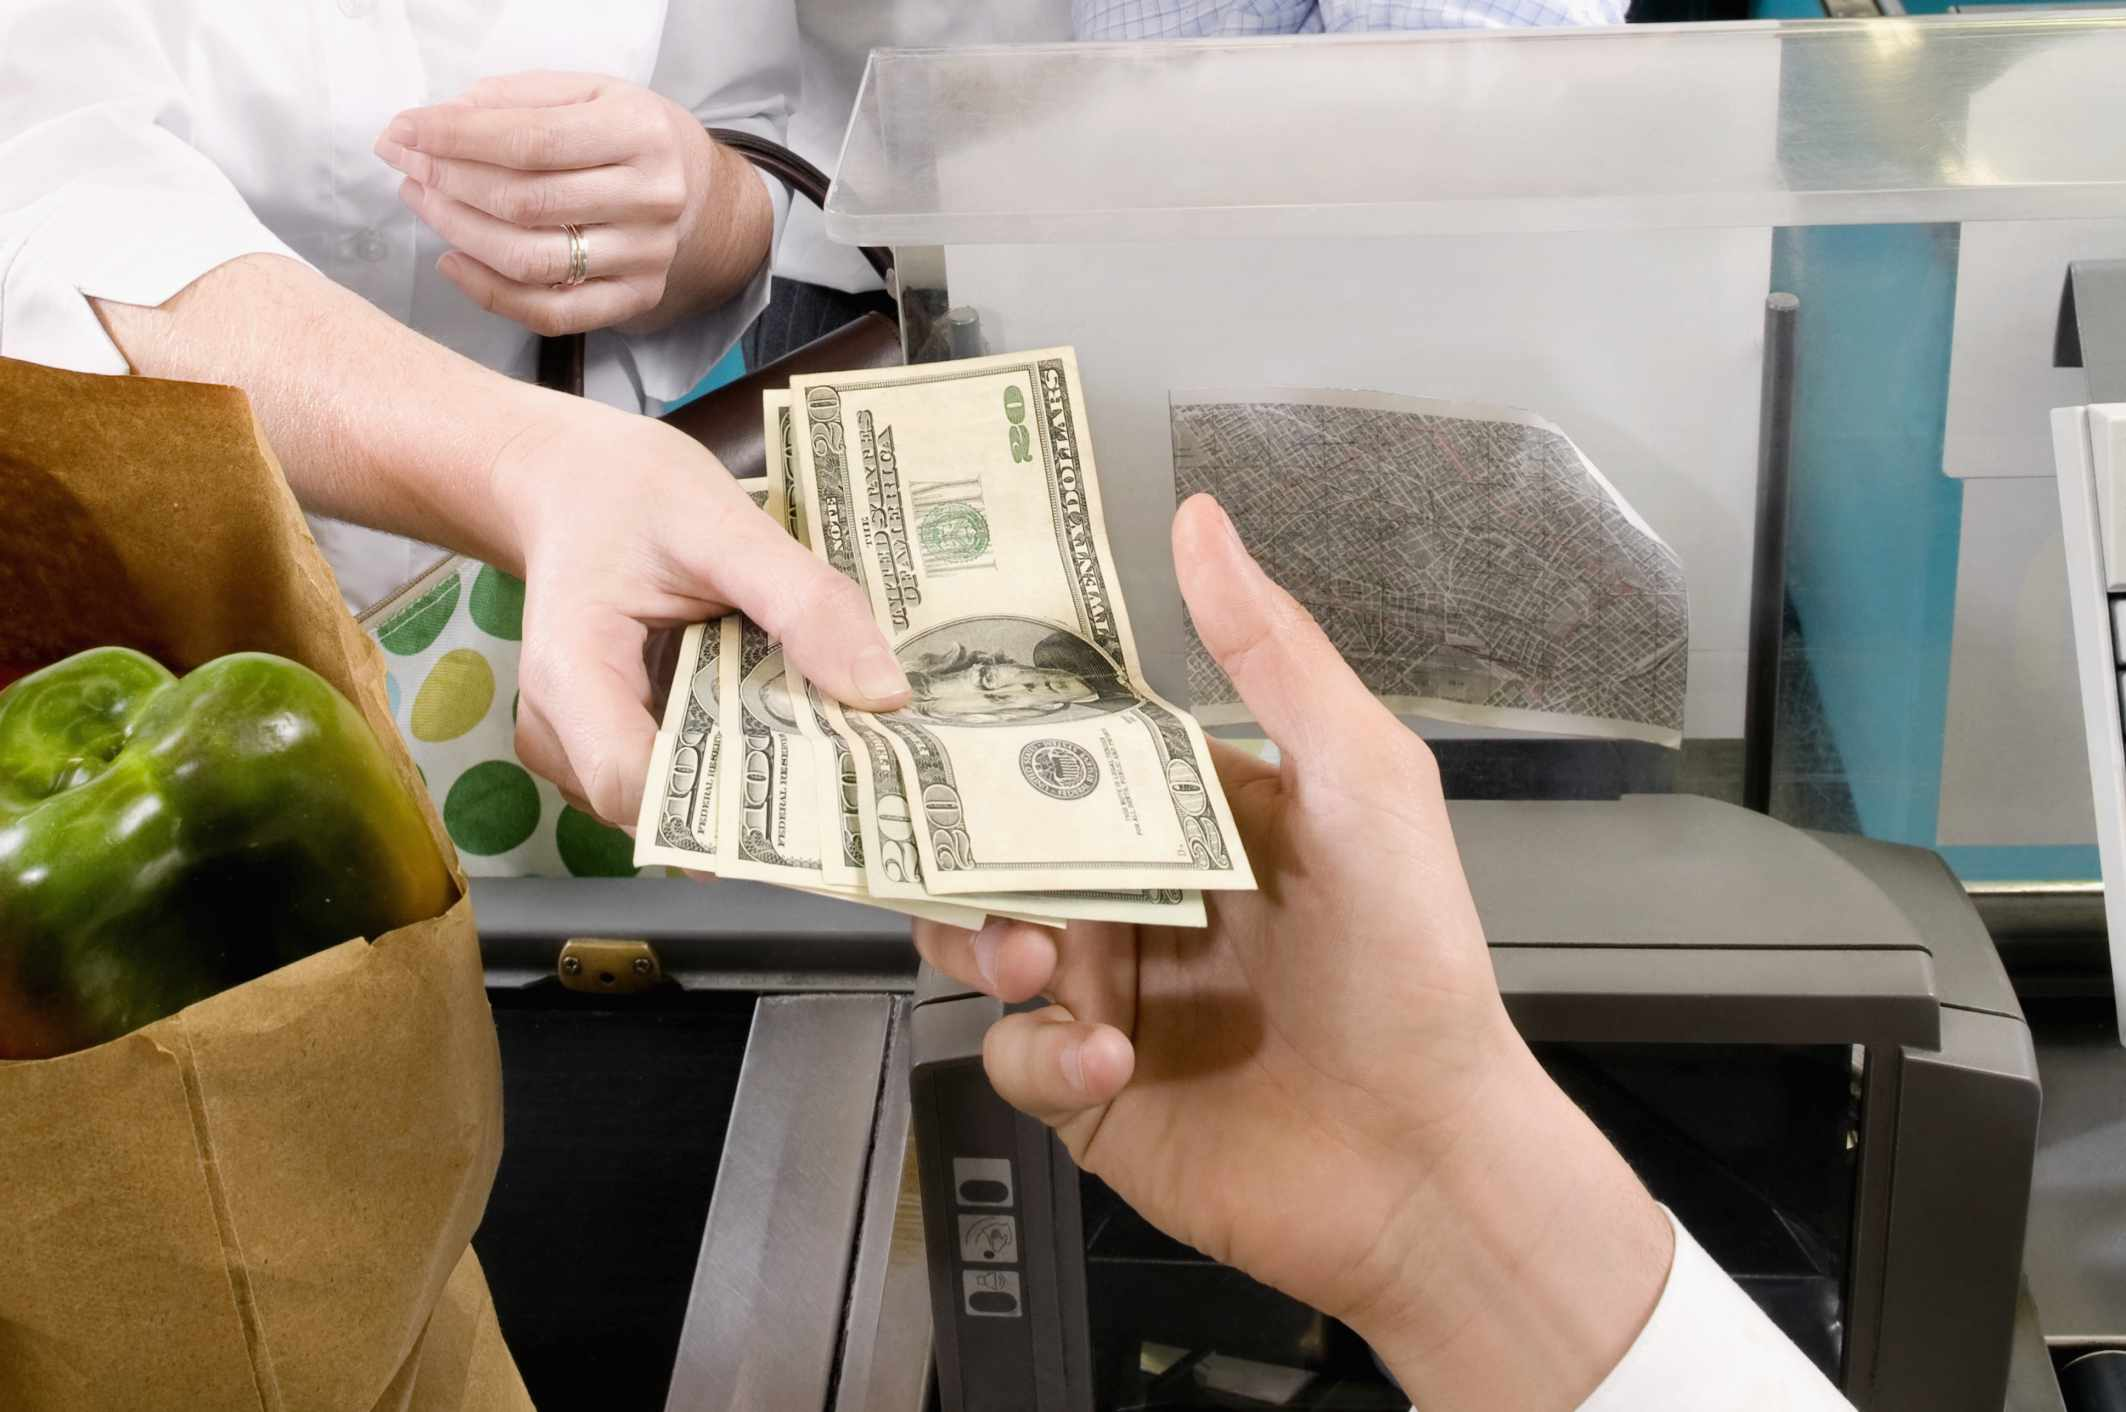 Paying for groceries